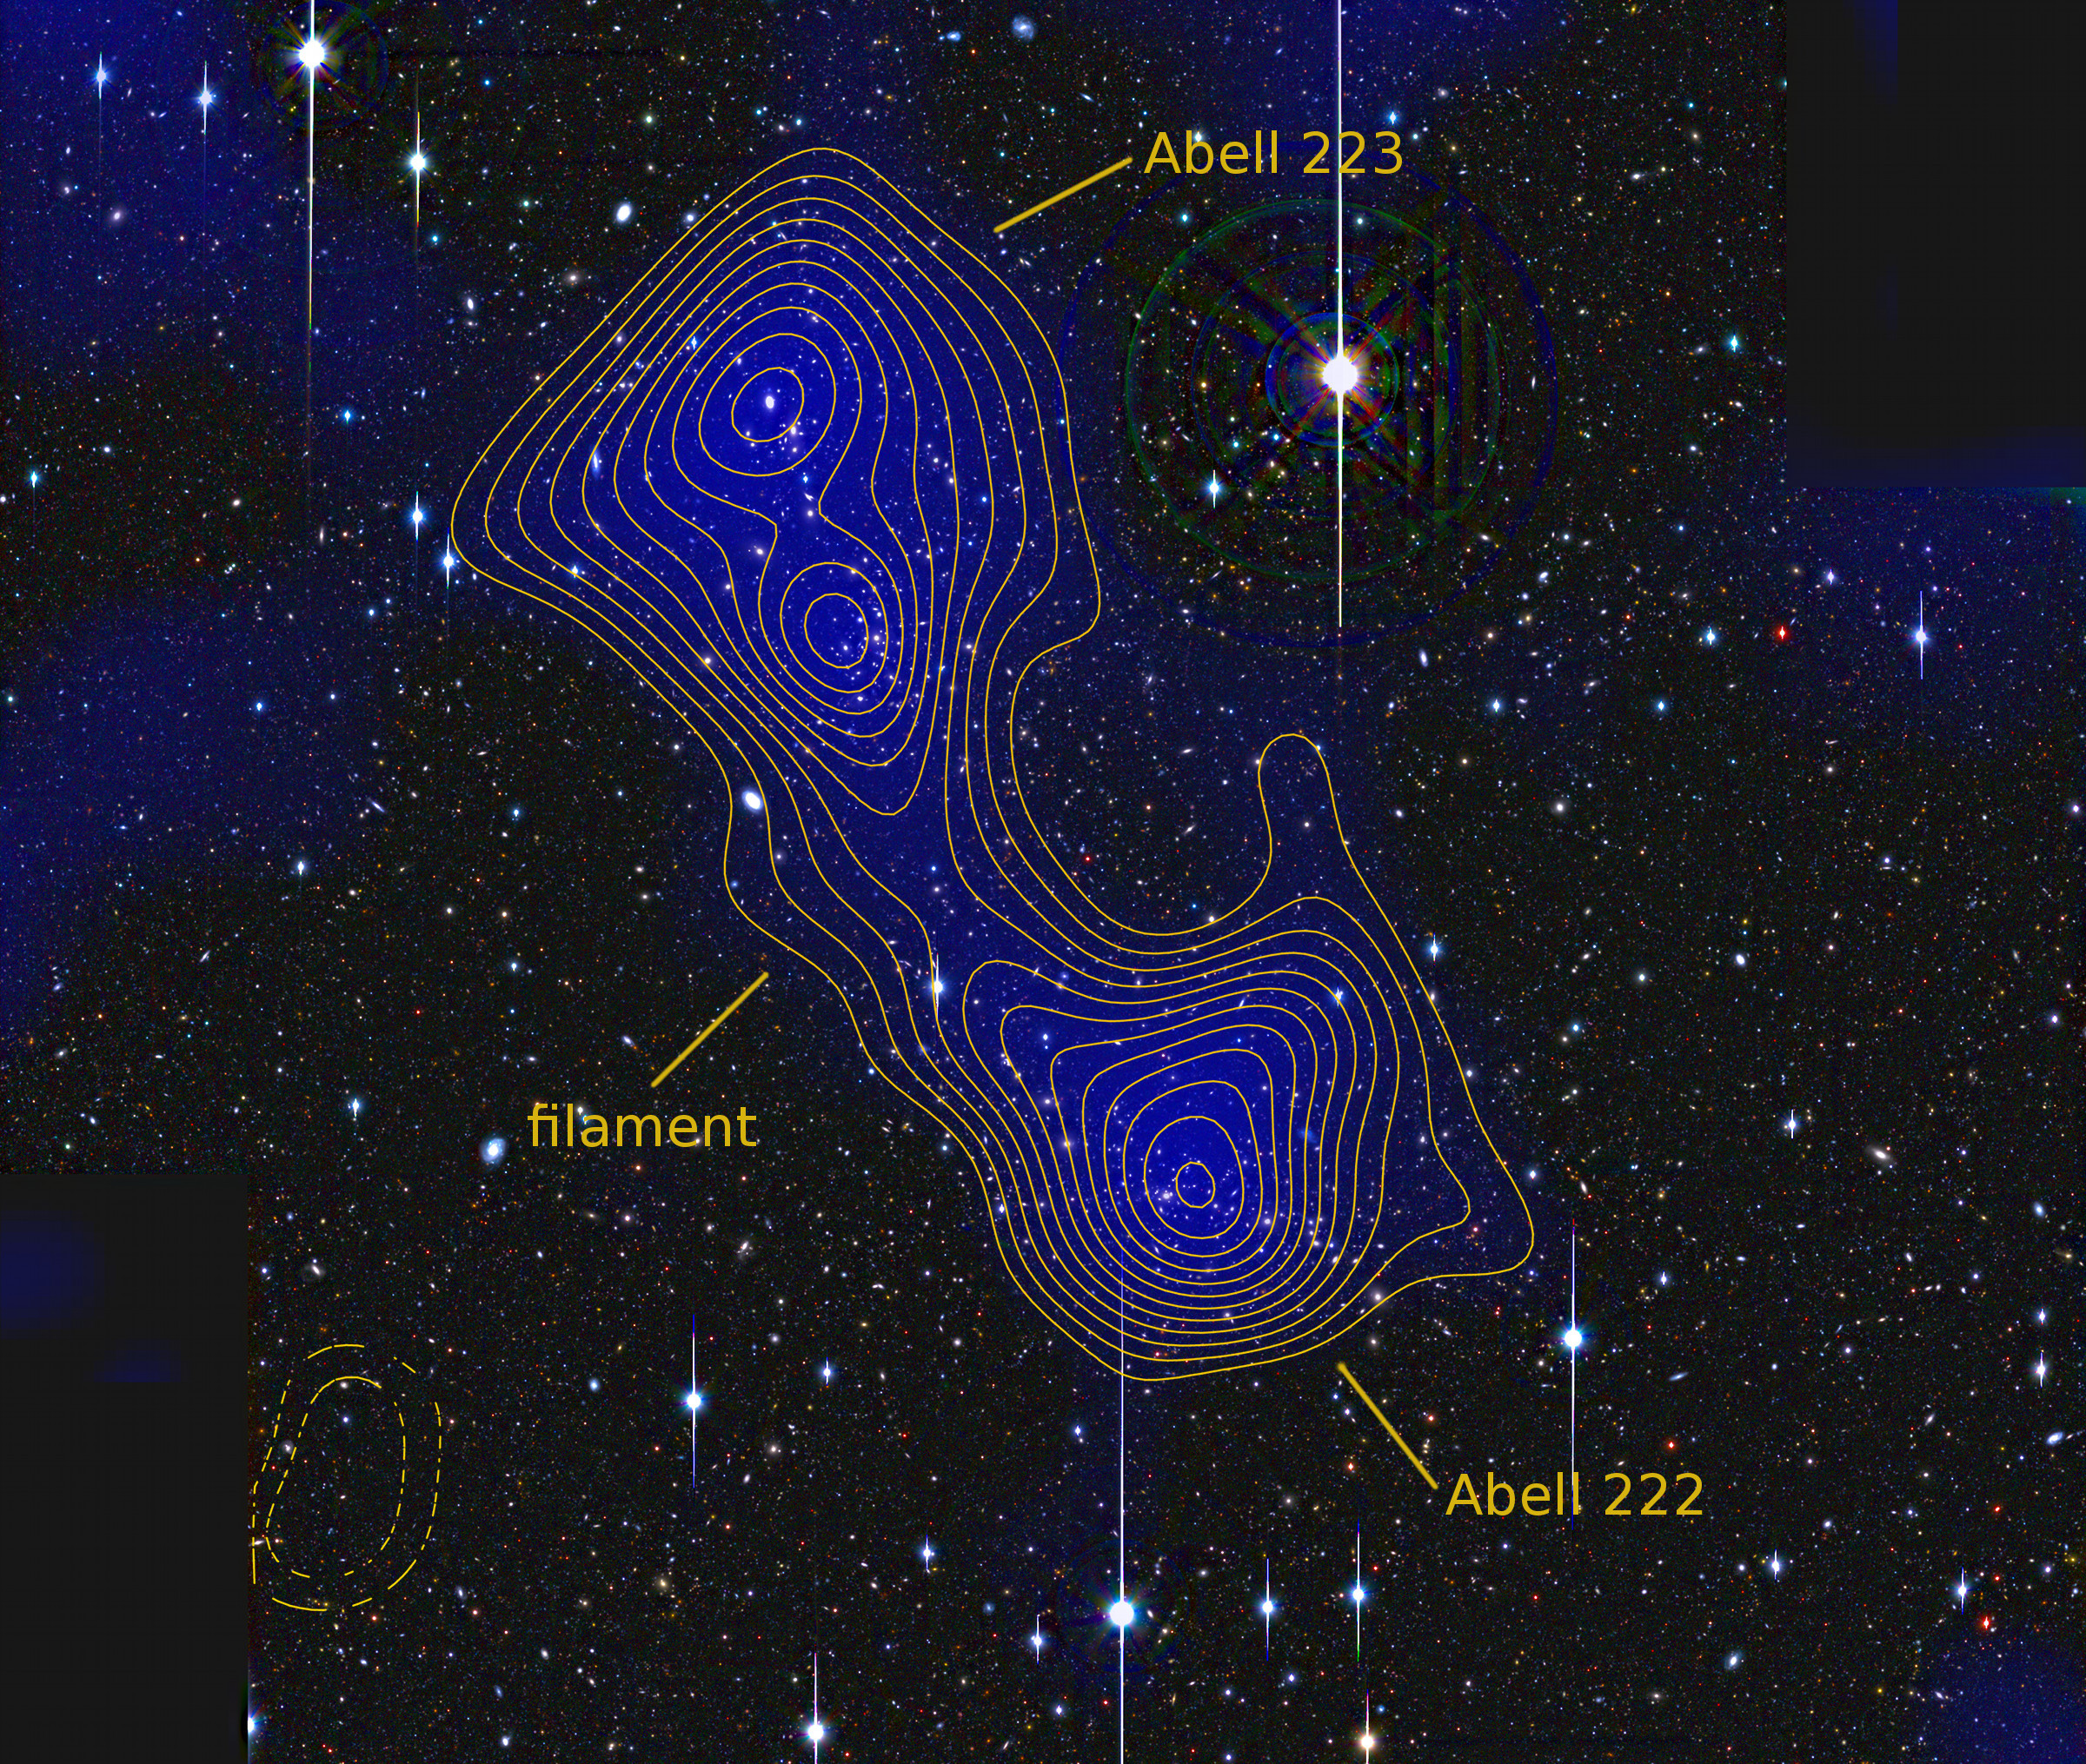 A filament of dark matter has been directly detected between the galaxy clusters Abell 222 and Abell 223. The blue shading and yellow contour lines represent the density of matter. Image credit: Jörg Dietrich, U-M Department of Physics